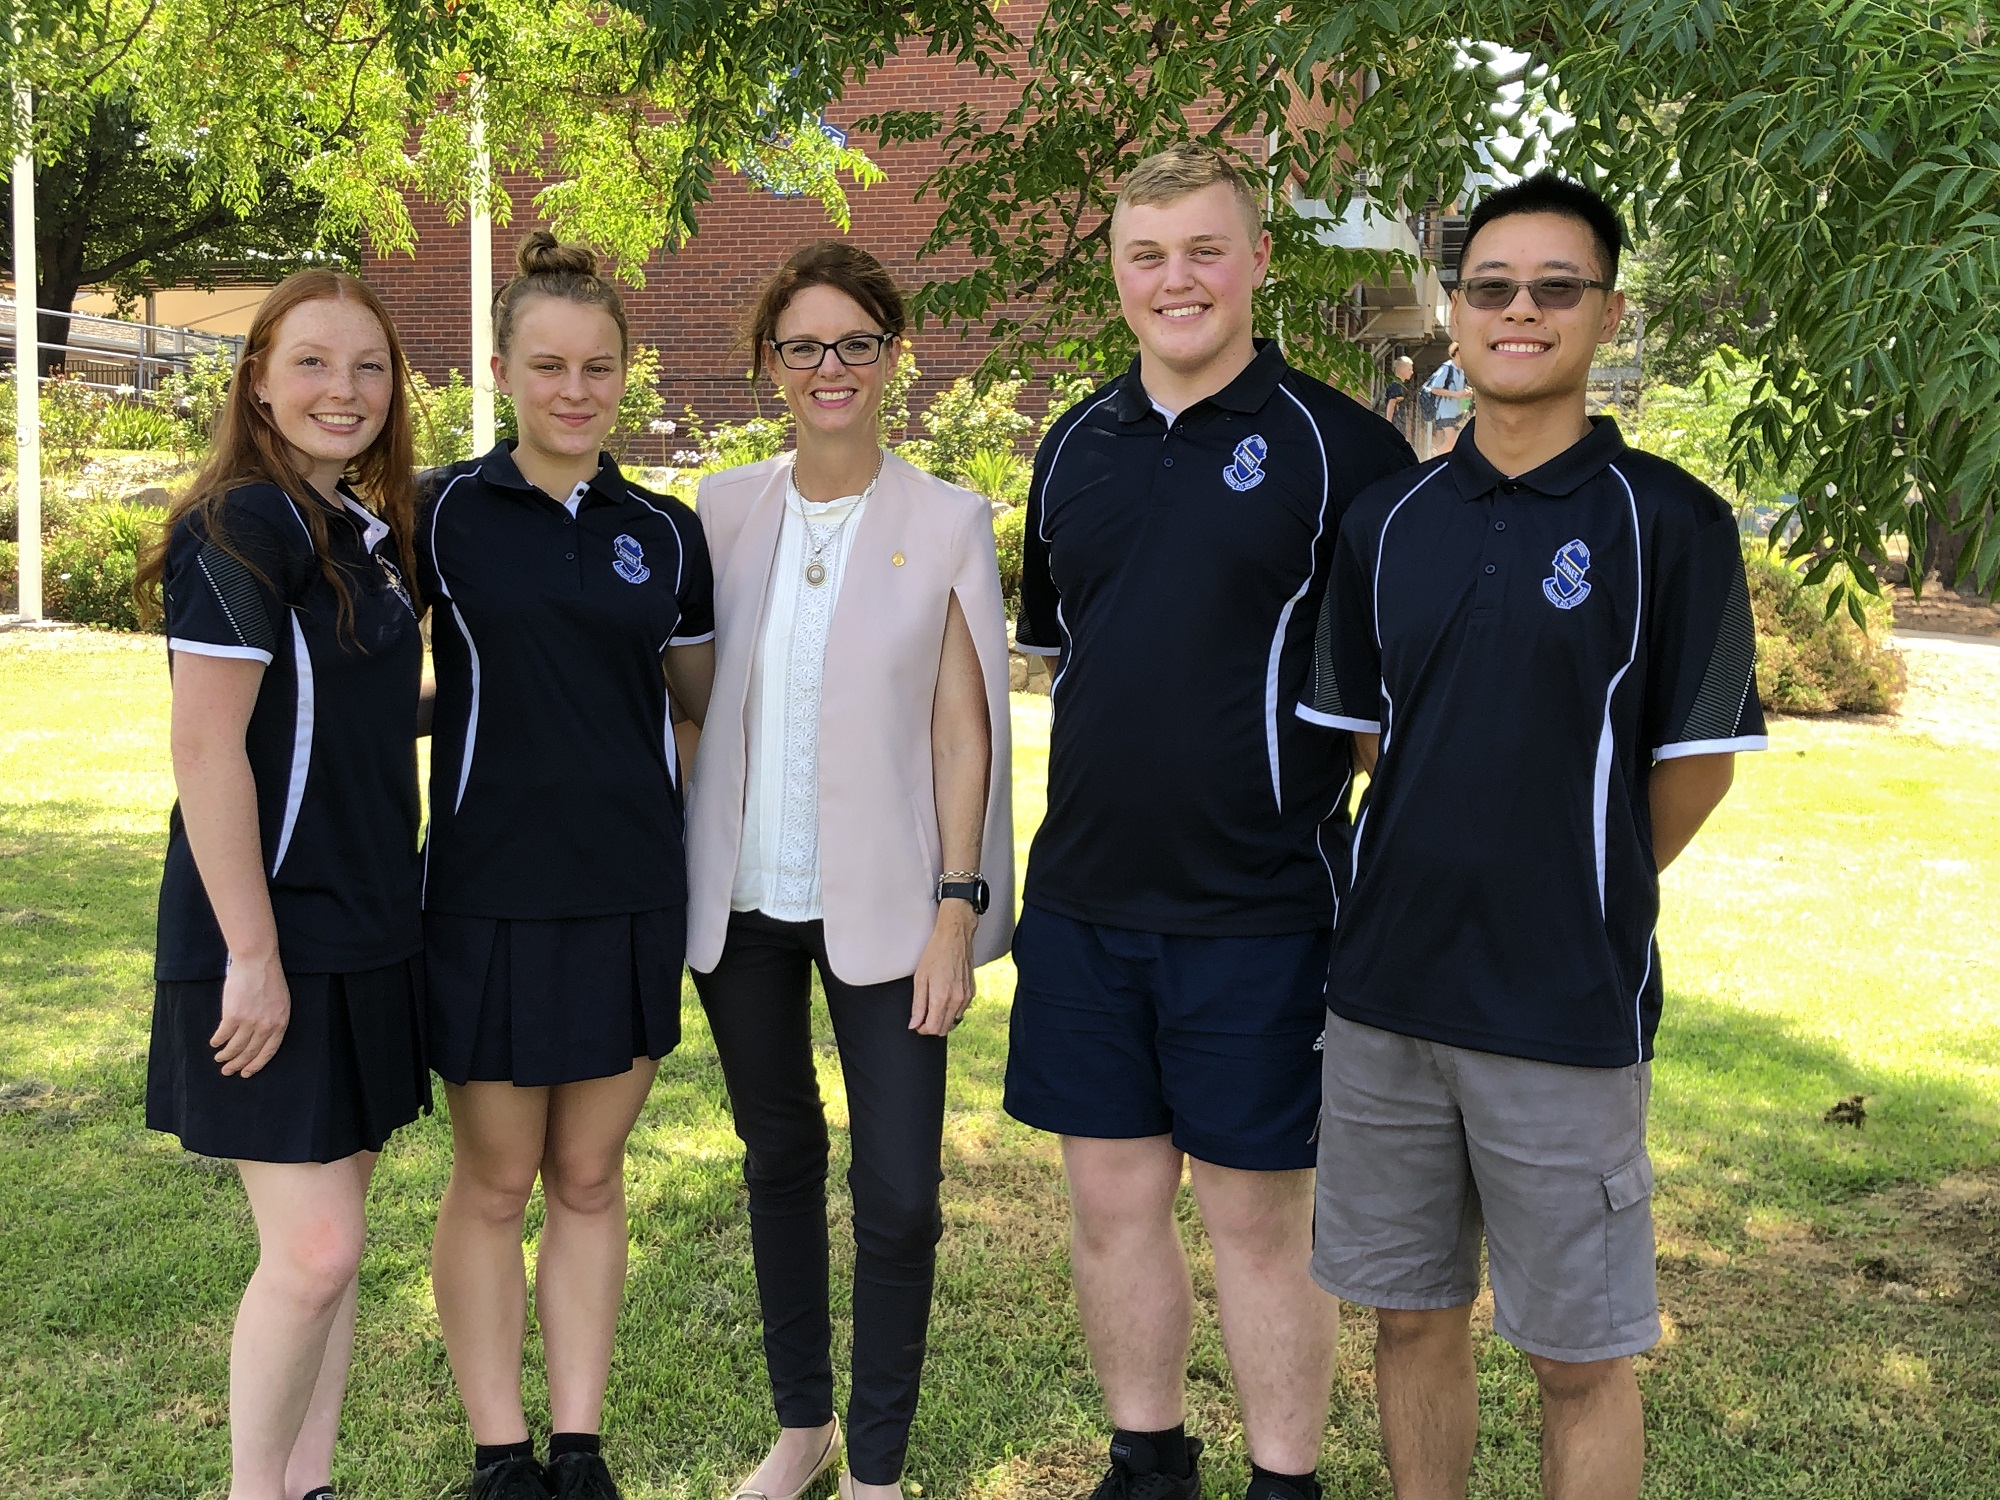 Two female school students and two male students wear their uniforms and stand around Steph Cooke. They are under a shady tree and smile at the camera.